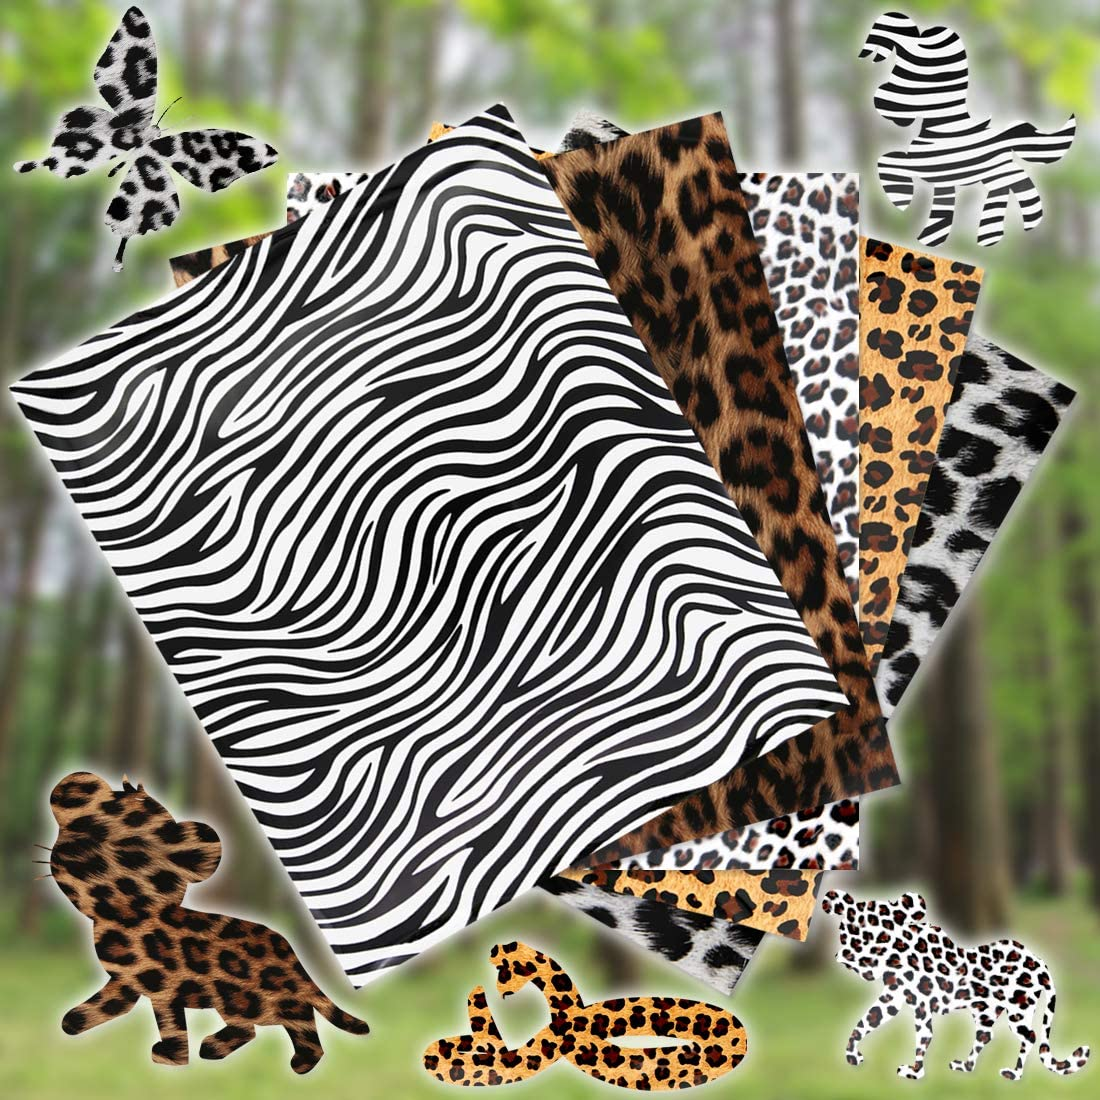 10 PCS Animal Patterned Heat Transfer Vinyl 12 x 10 inches Leopard Print HTV Sheets for T-Shirt Sewing Decoration and DIY Craft Material